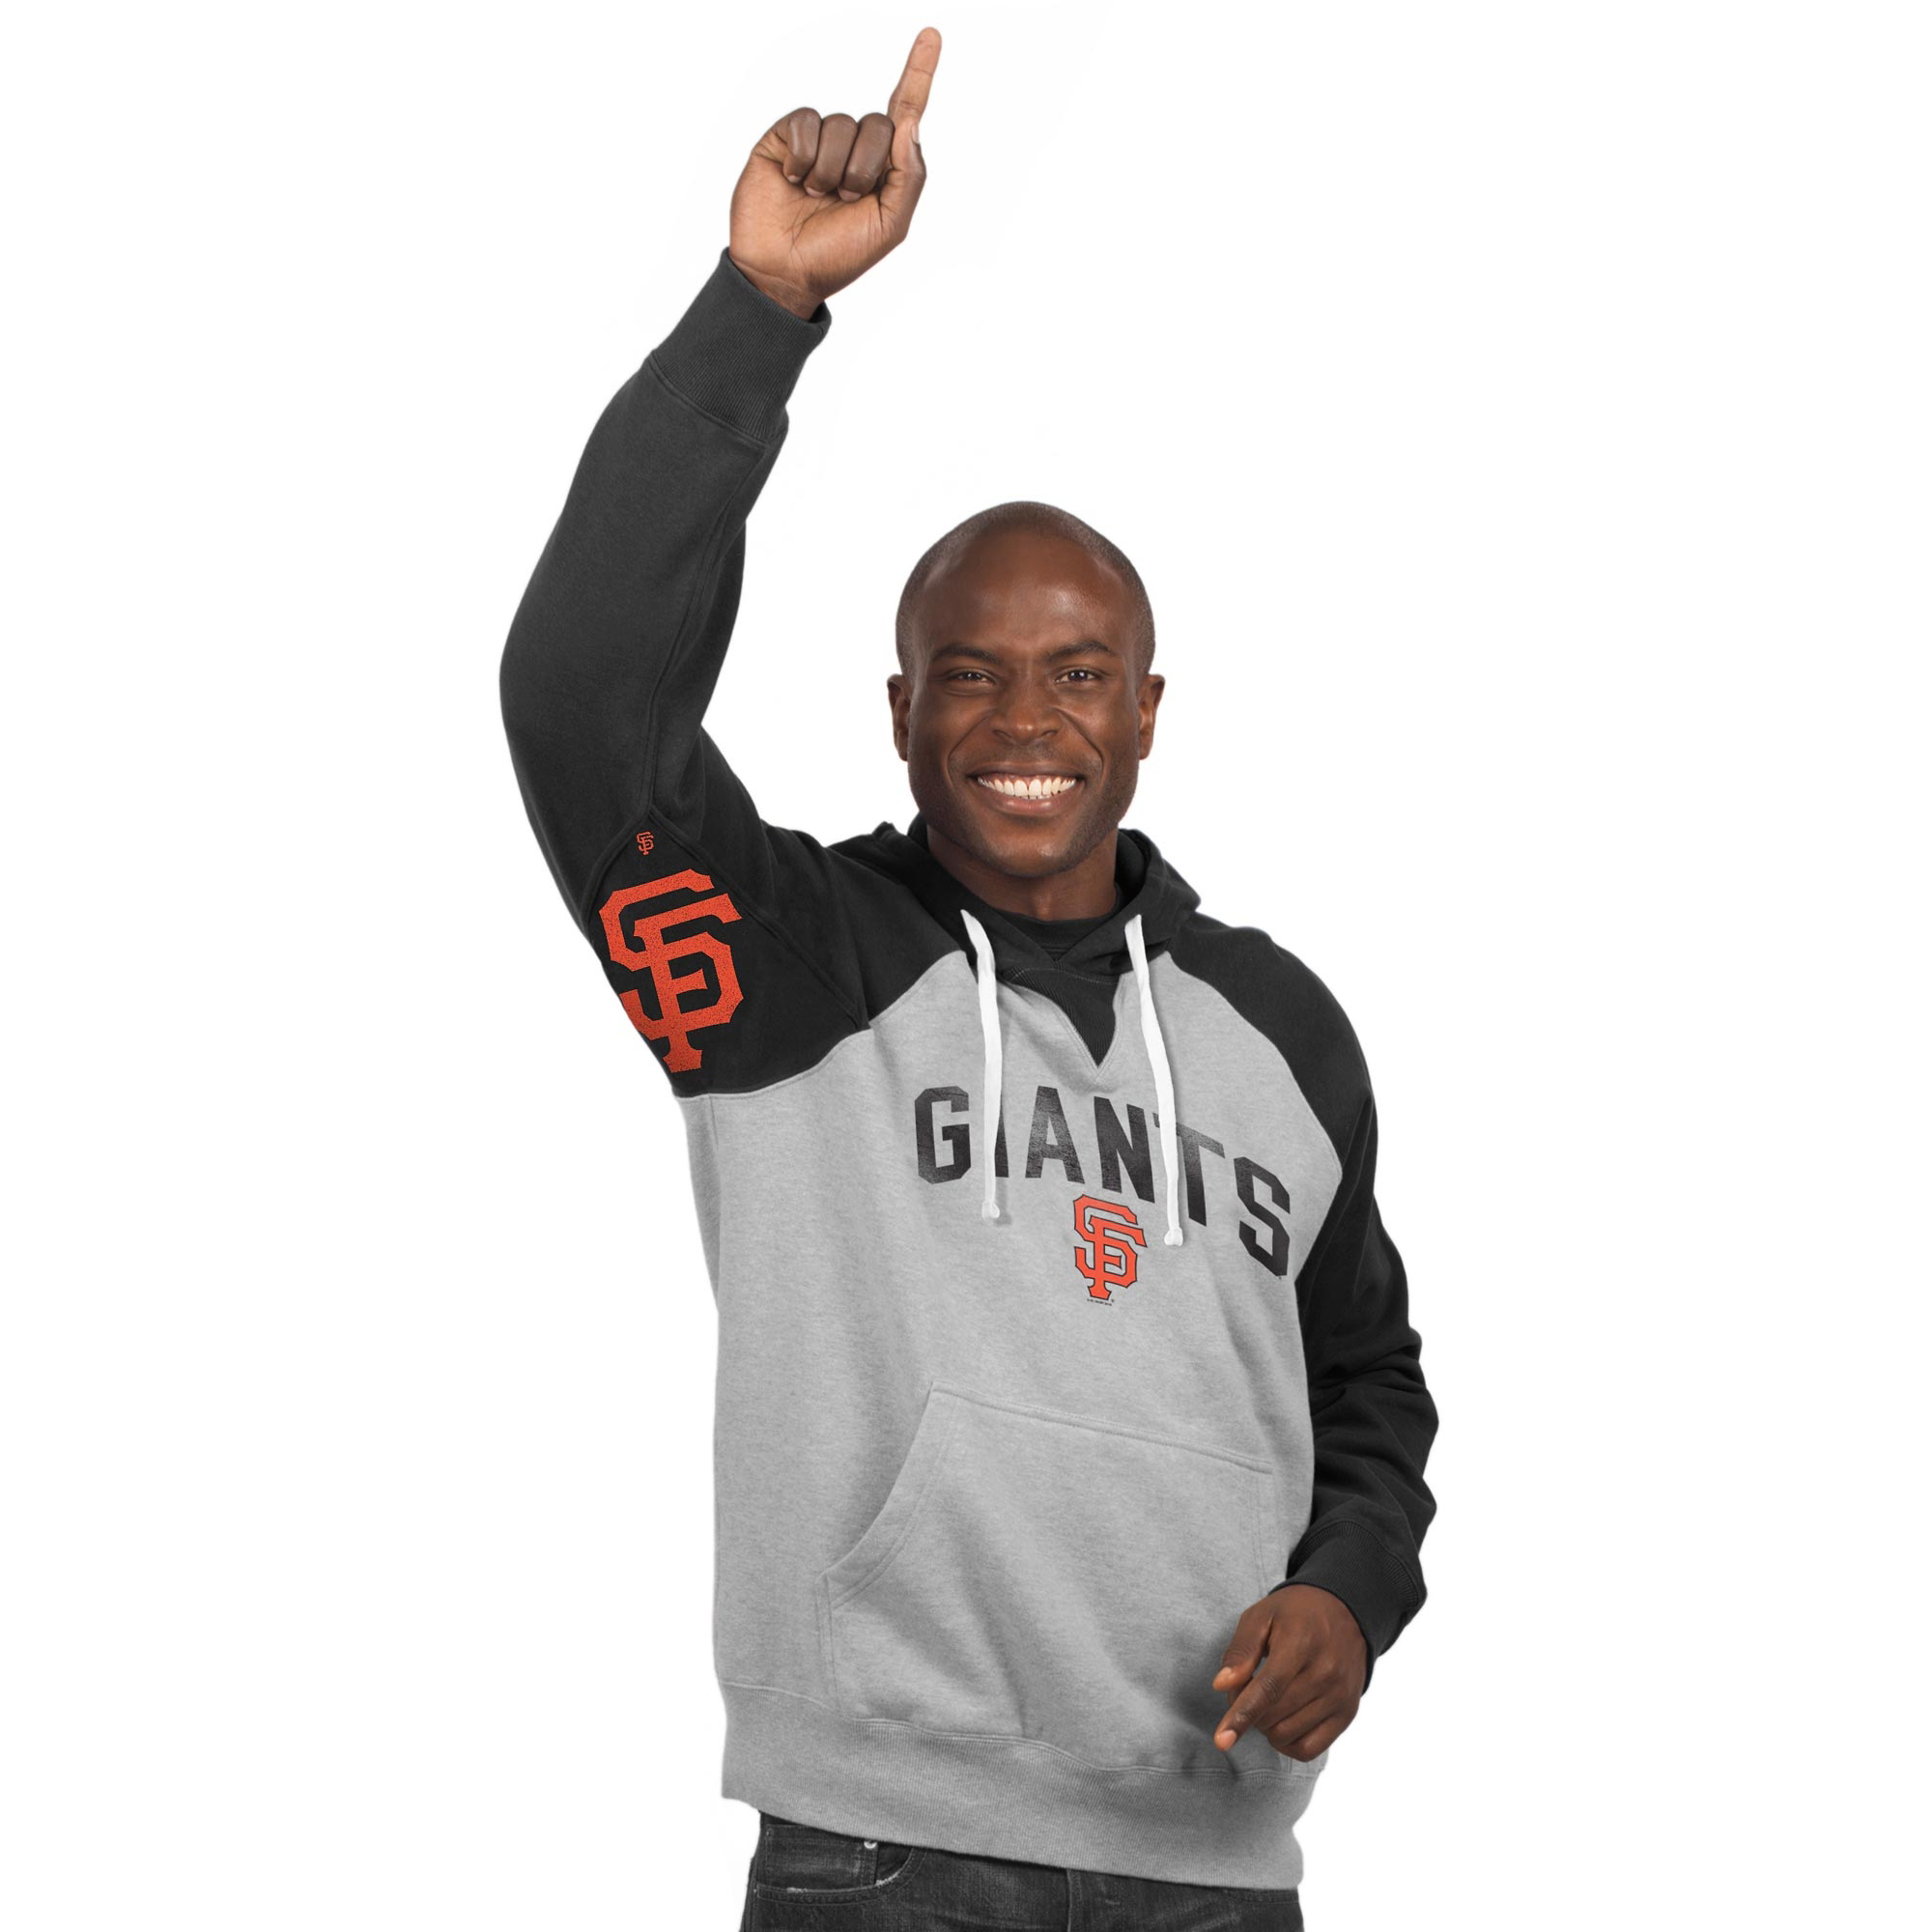 San Francisco Giants Hands High Pullover Hoodie - Gray